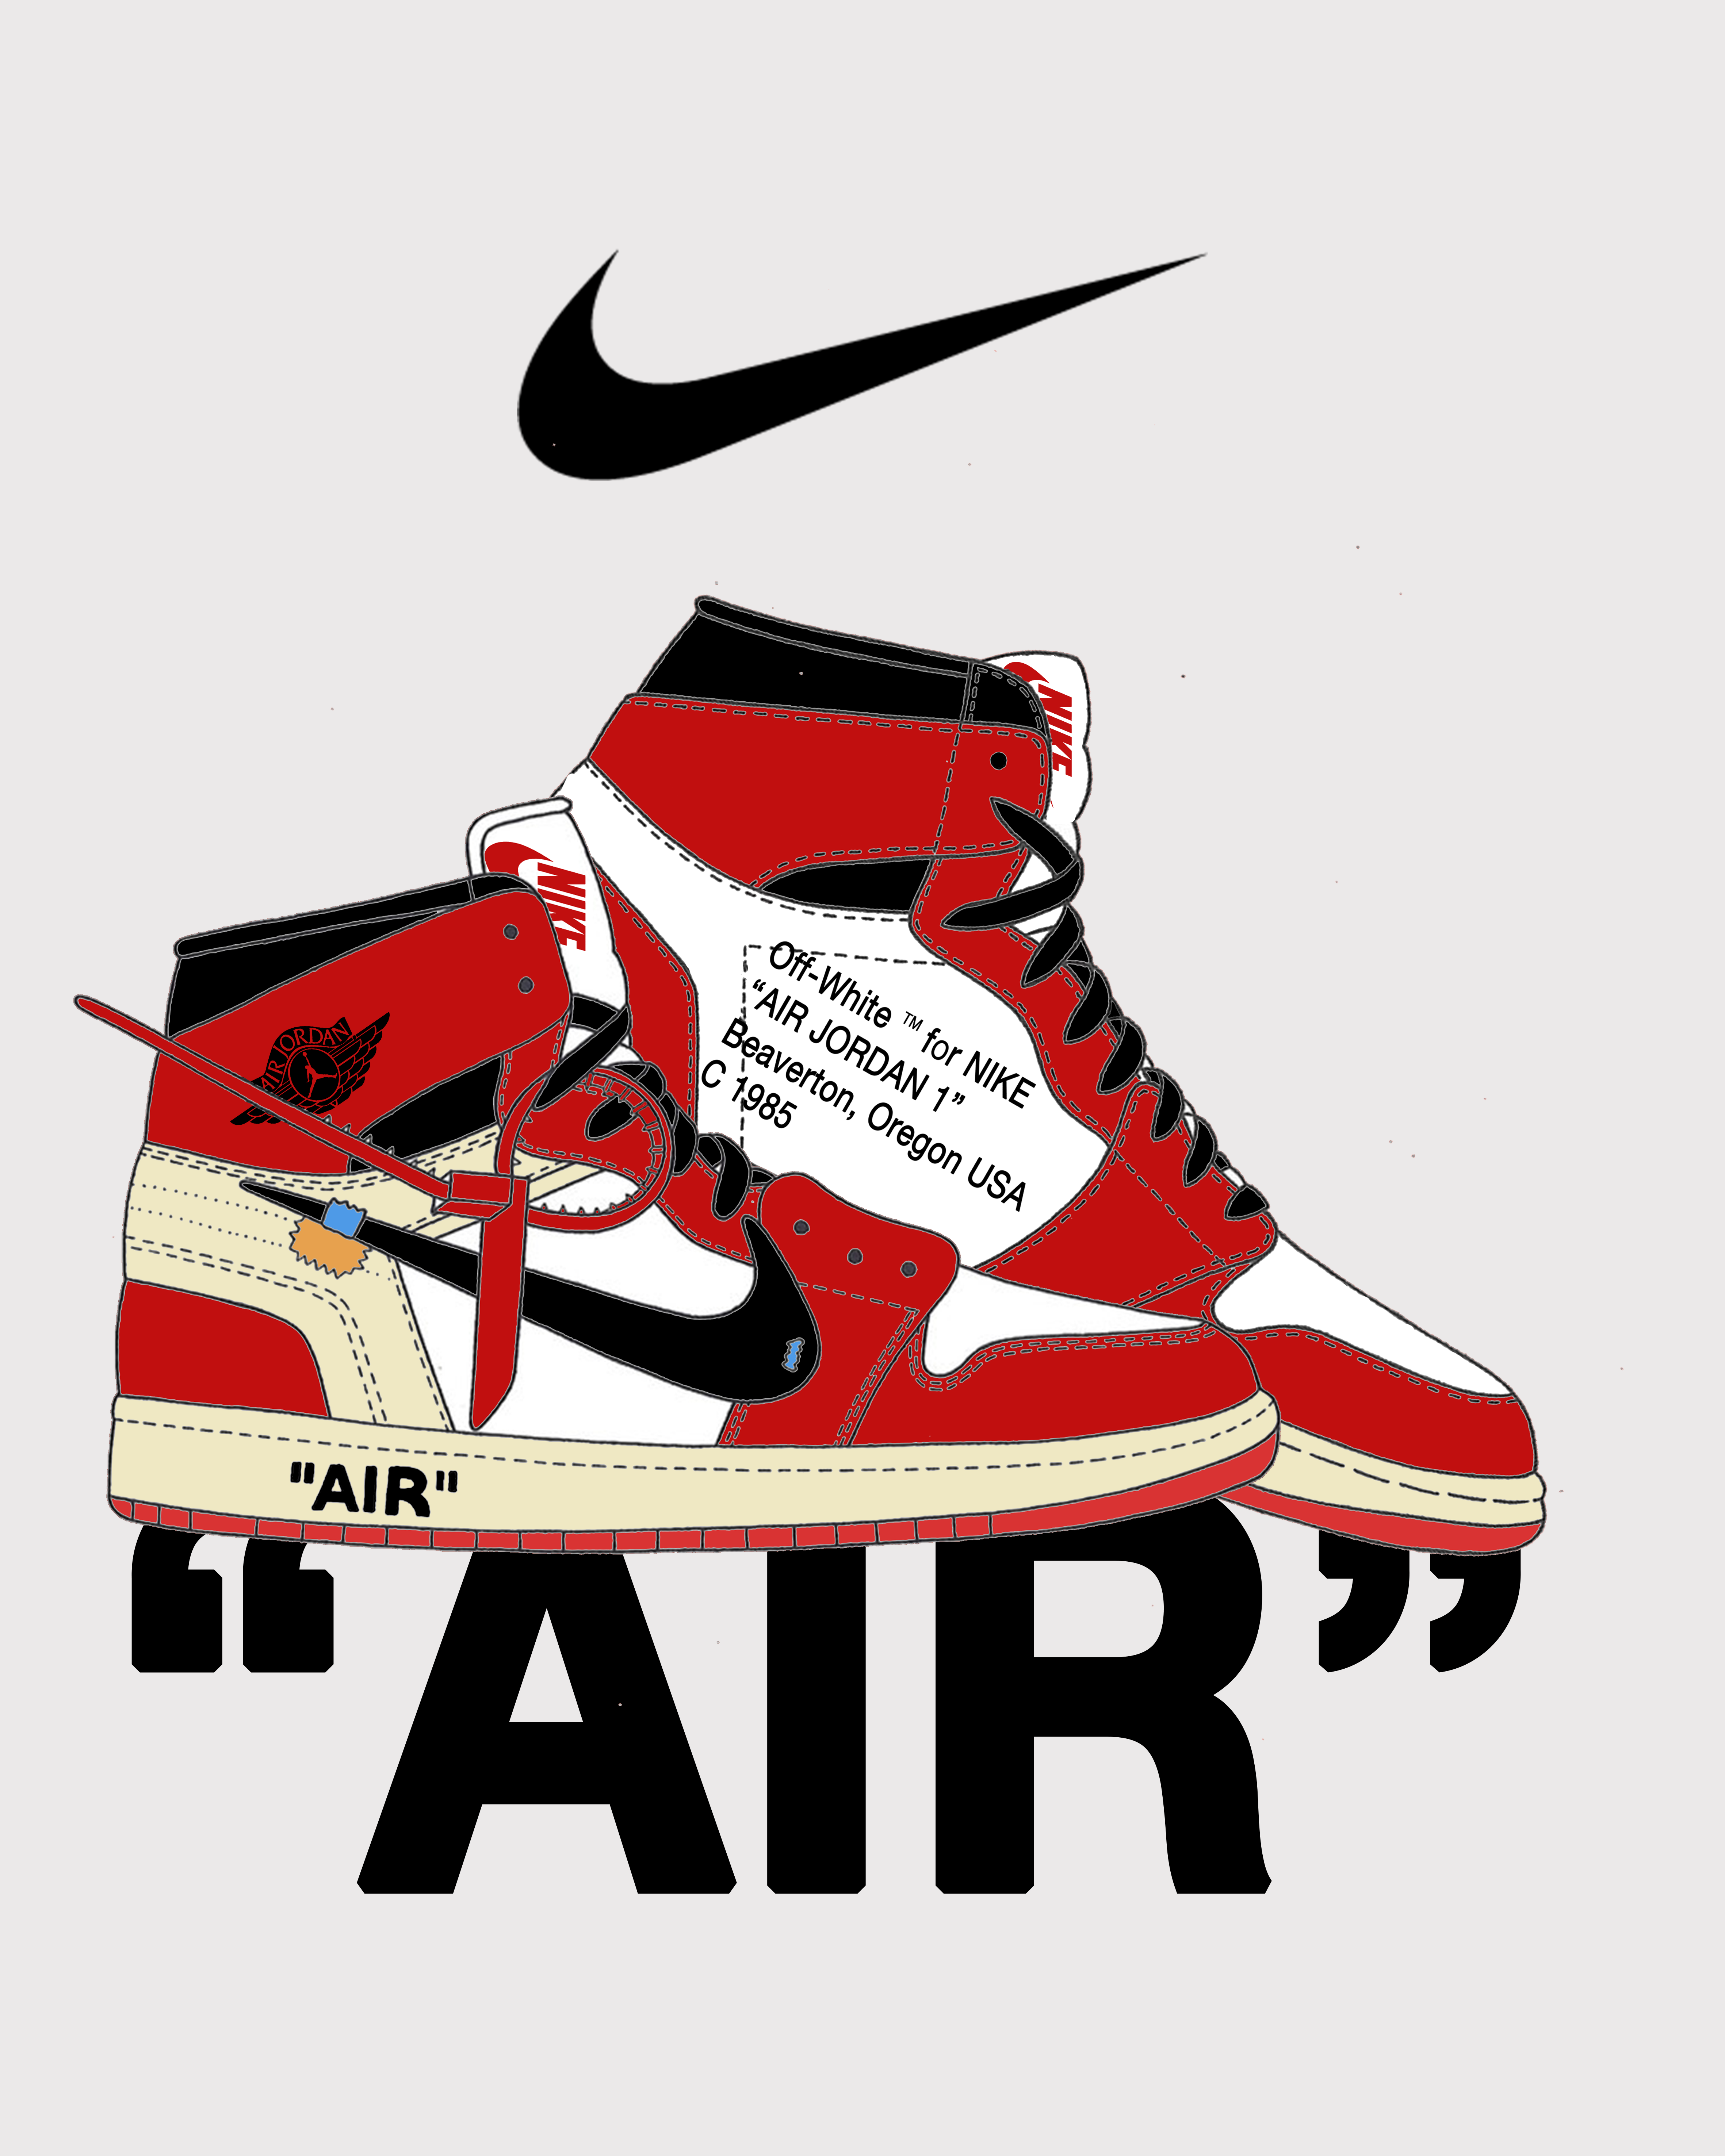 off white tm for nike air jordan 1 beaverton oregon usa c1985 sfondi per iphone sfondi pinterest